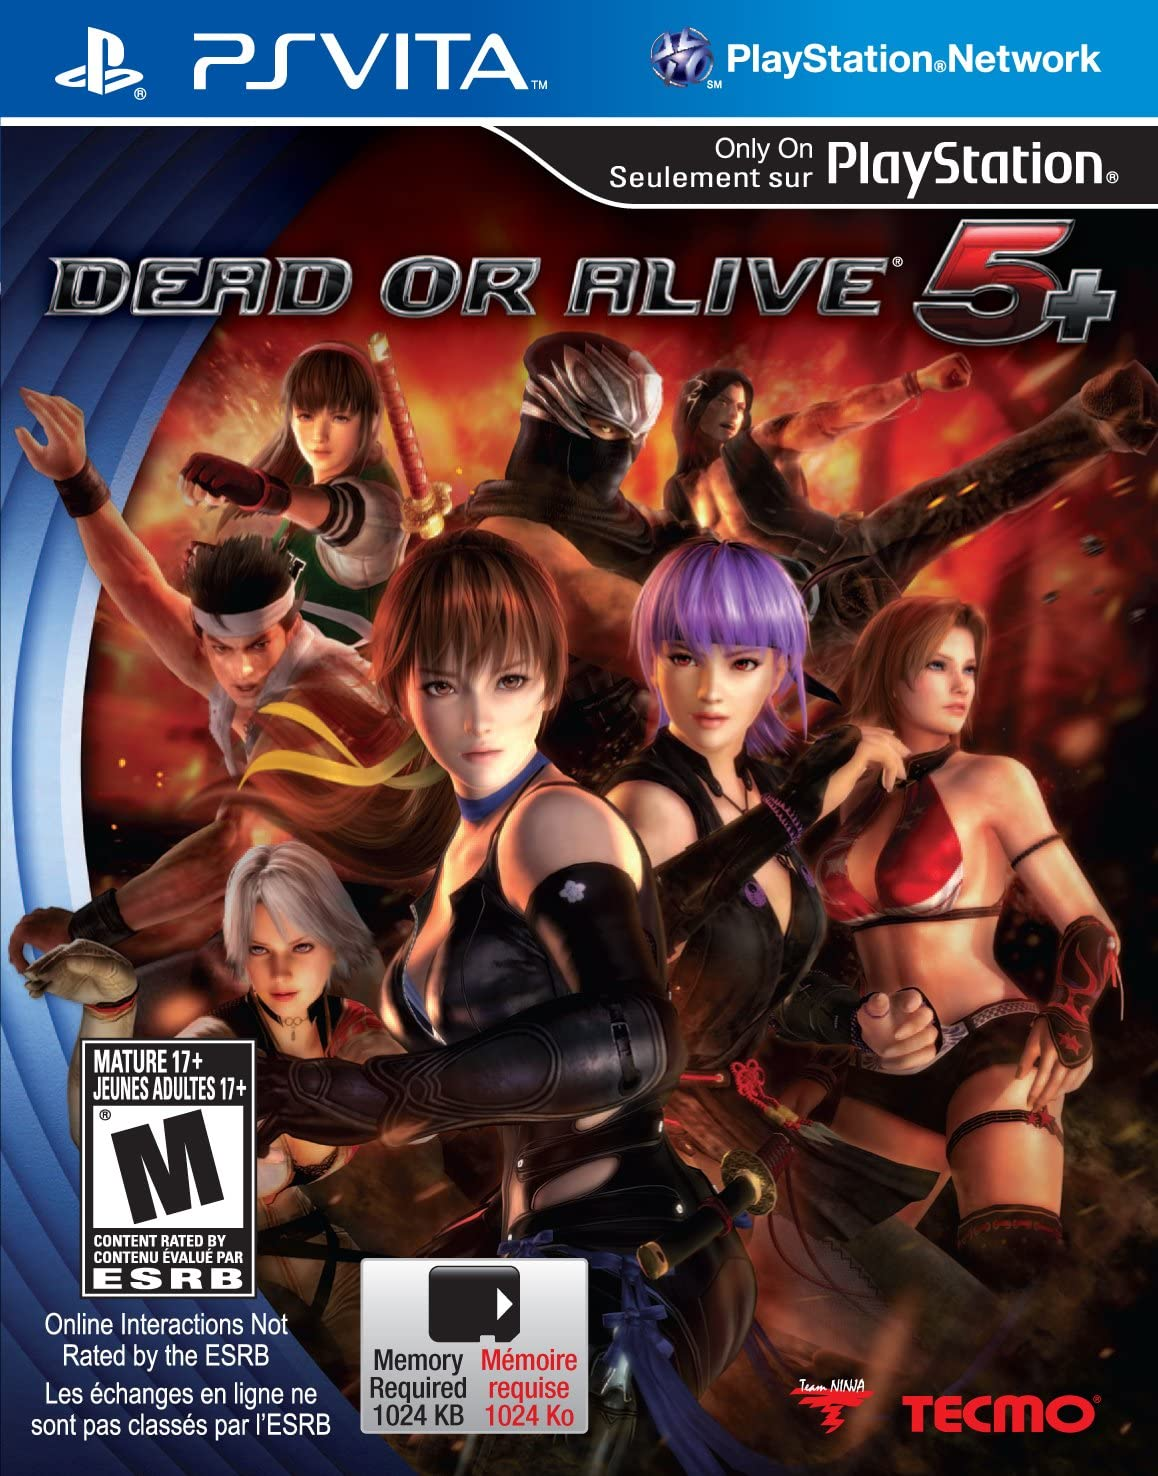 Amazon.com: Dead or Alive 5 Plus: Video Games